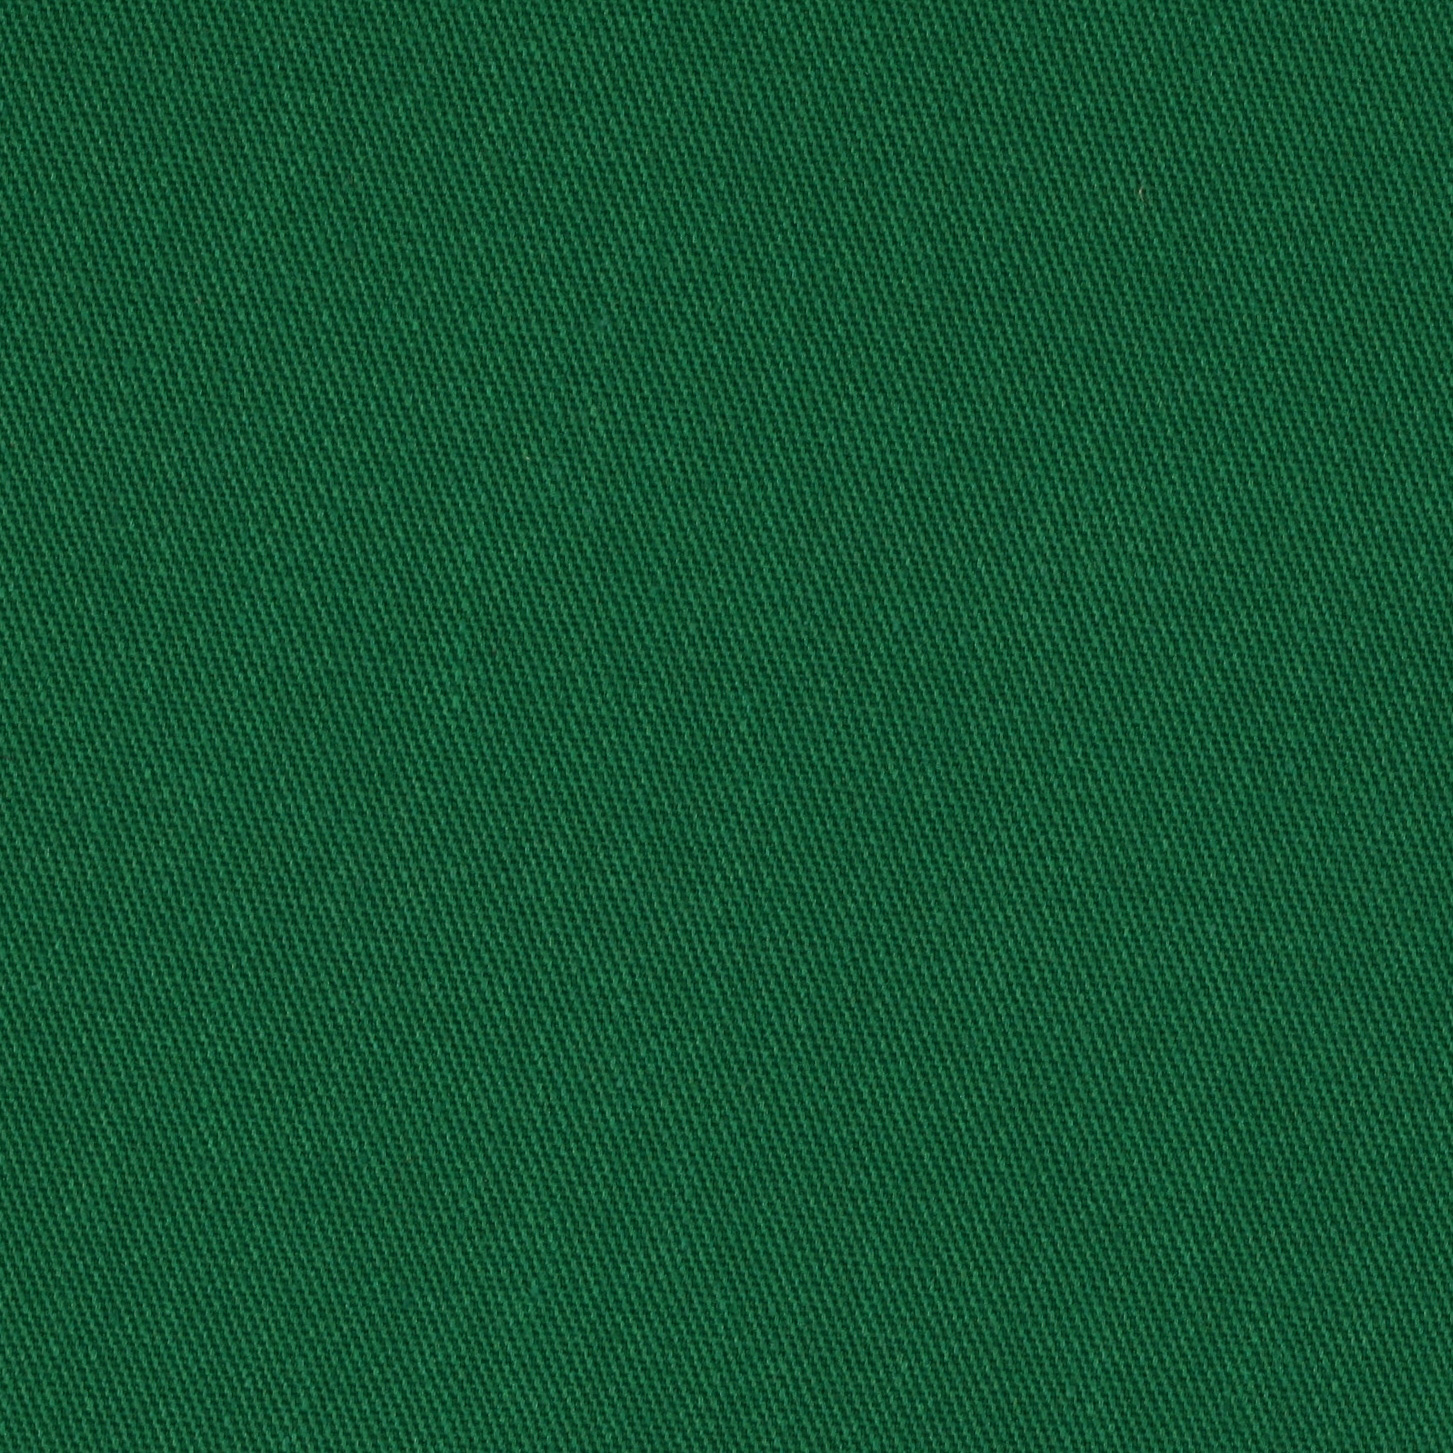 Image of Diversitex Polyester/Cotton Twill Kelly Green Fabric